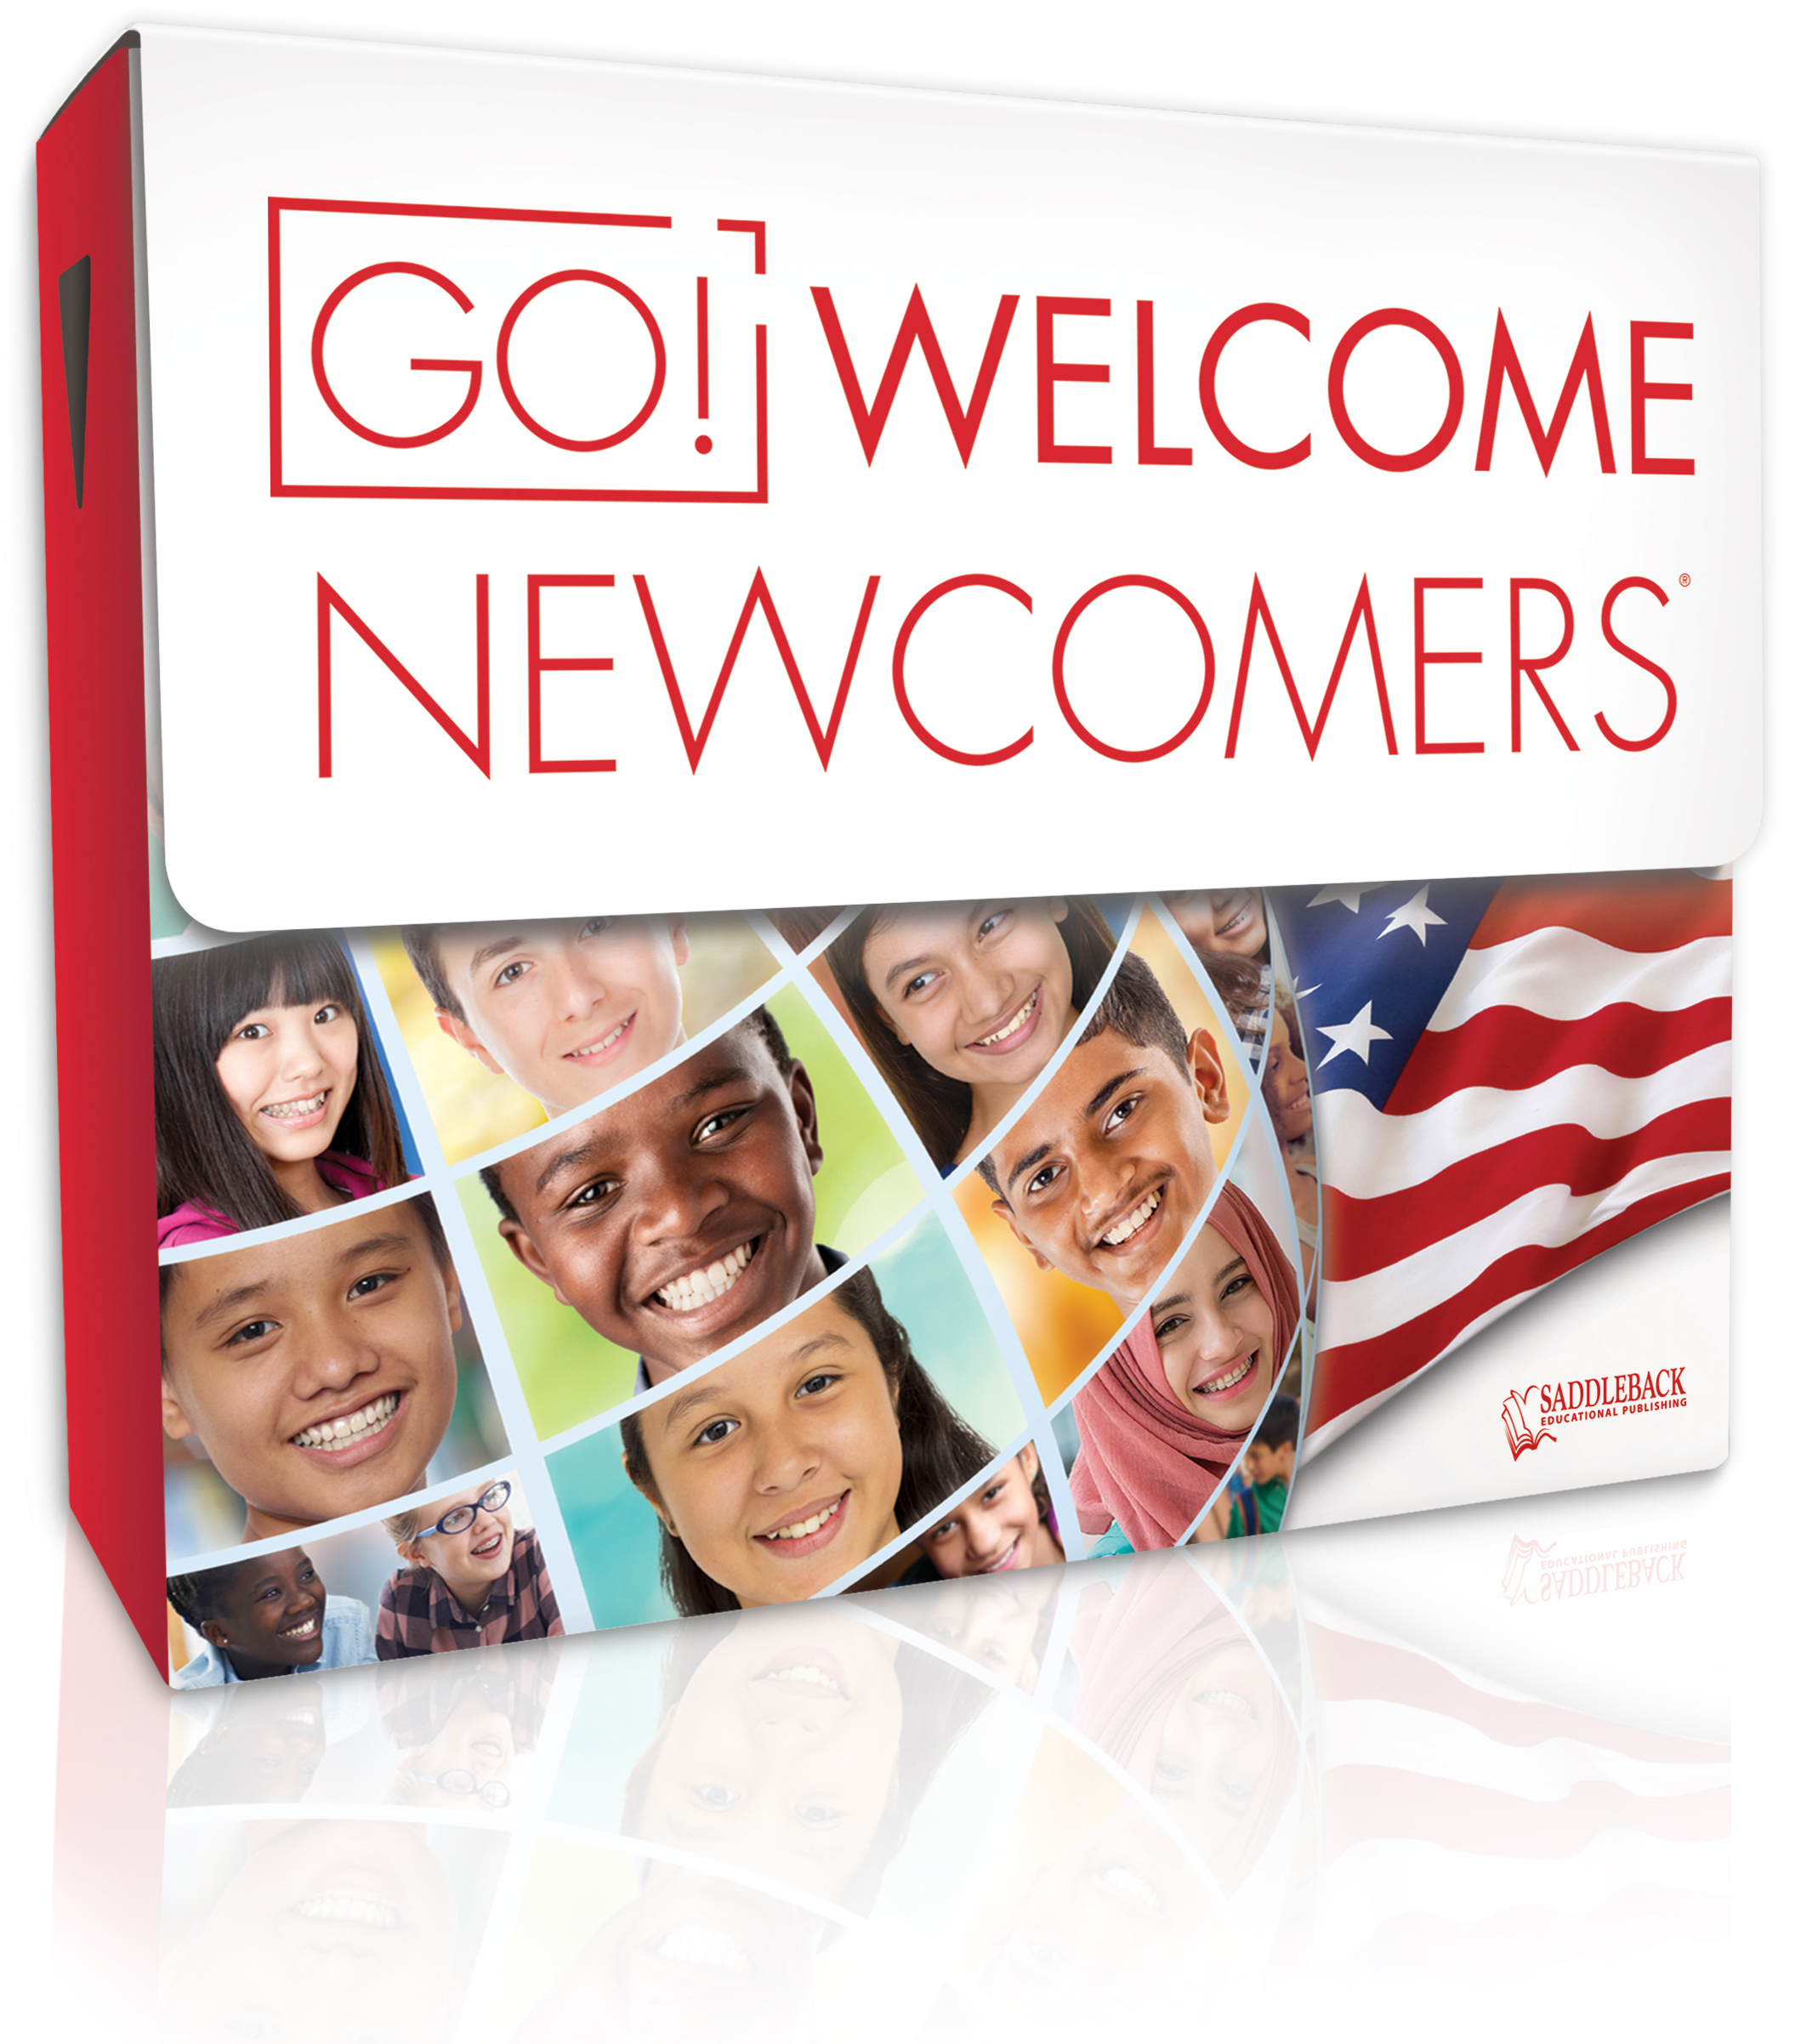 go-welcome-newcomers-library.jpg